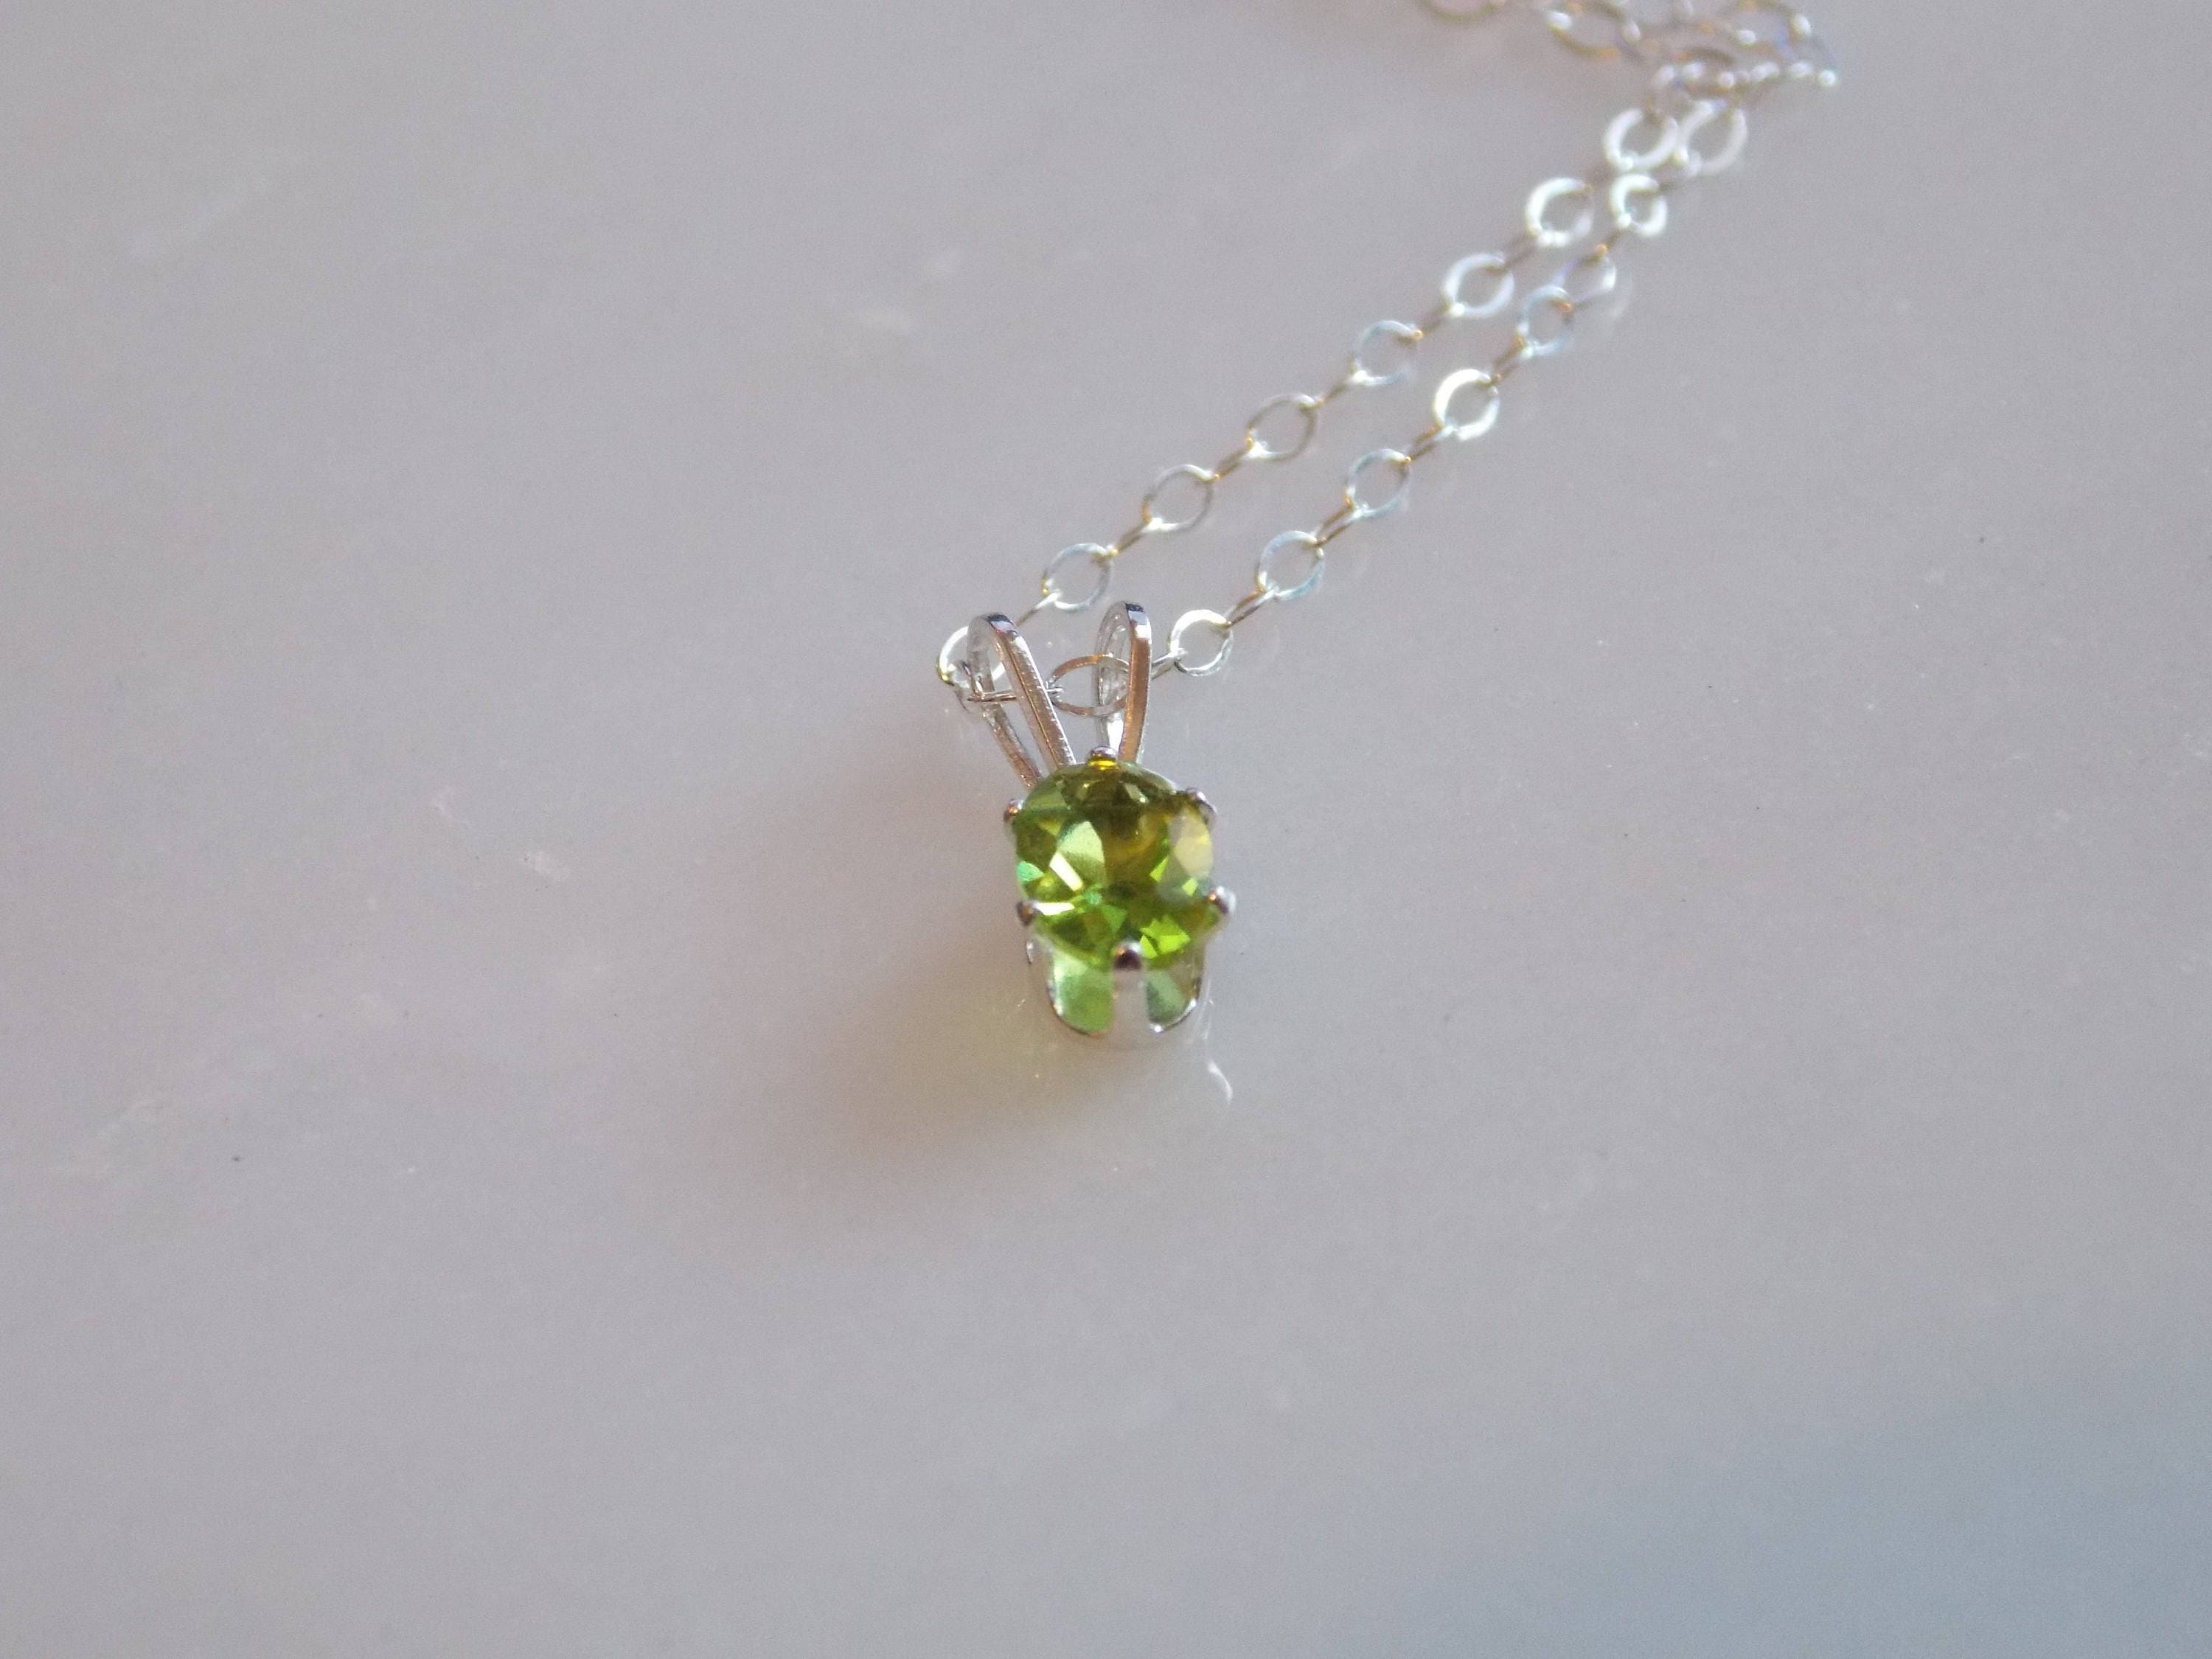 meg necklace in mystic birthstonecluster mysticmeg item jands birthstone jewellery rg collection august peridot